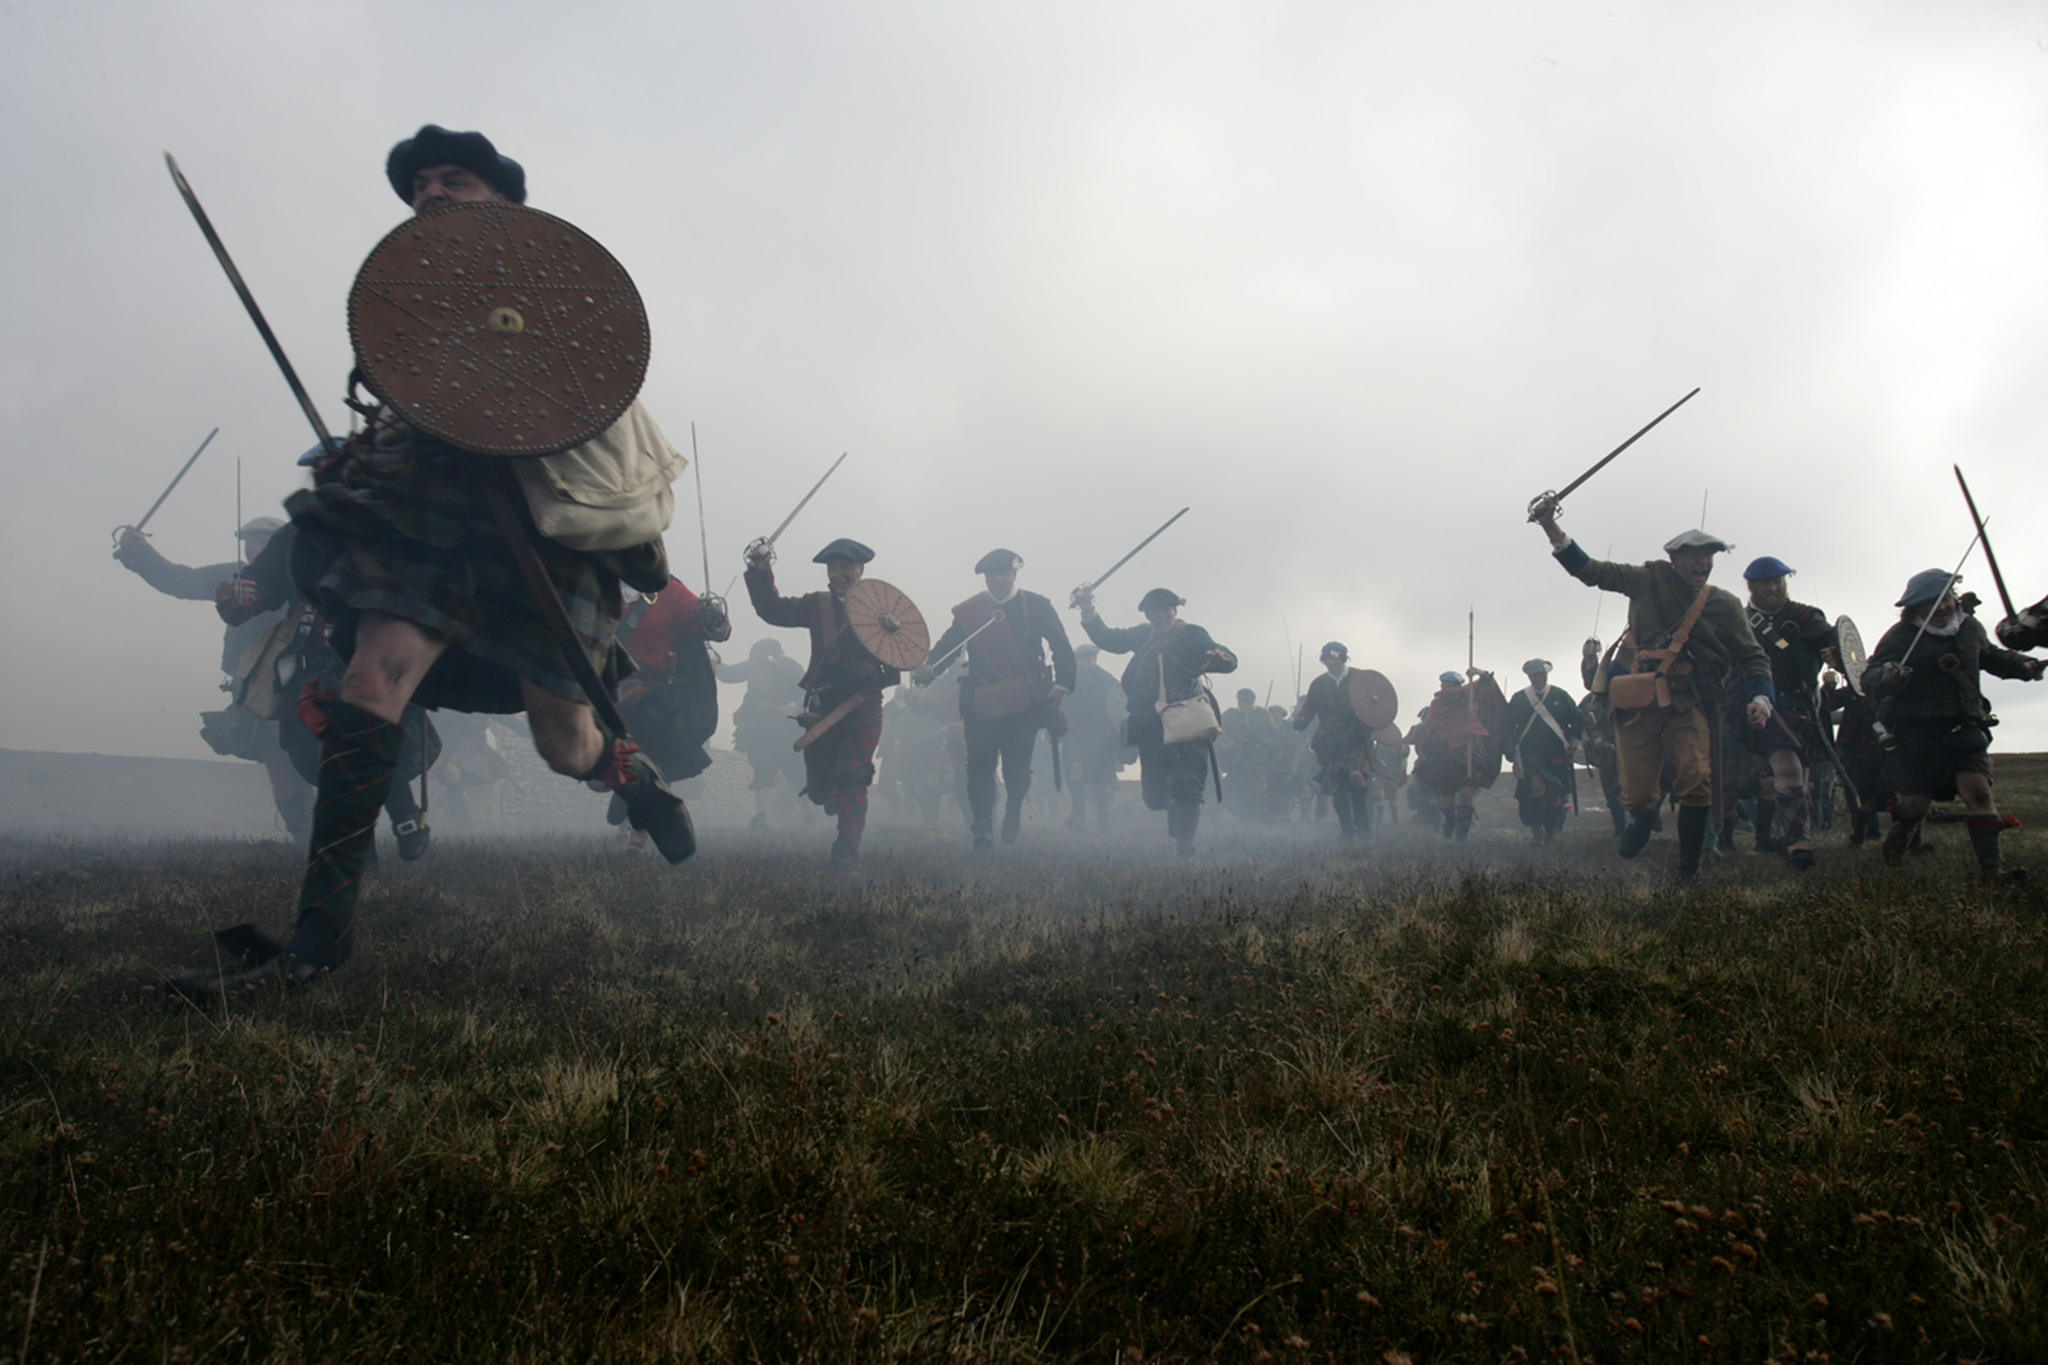 Battle of Culloden reenactment.